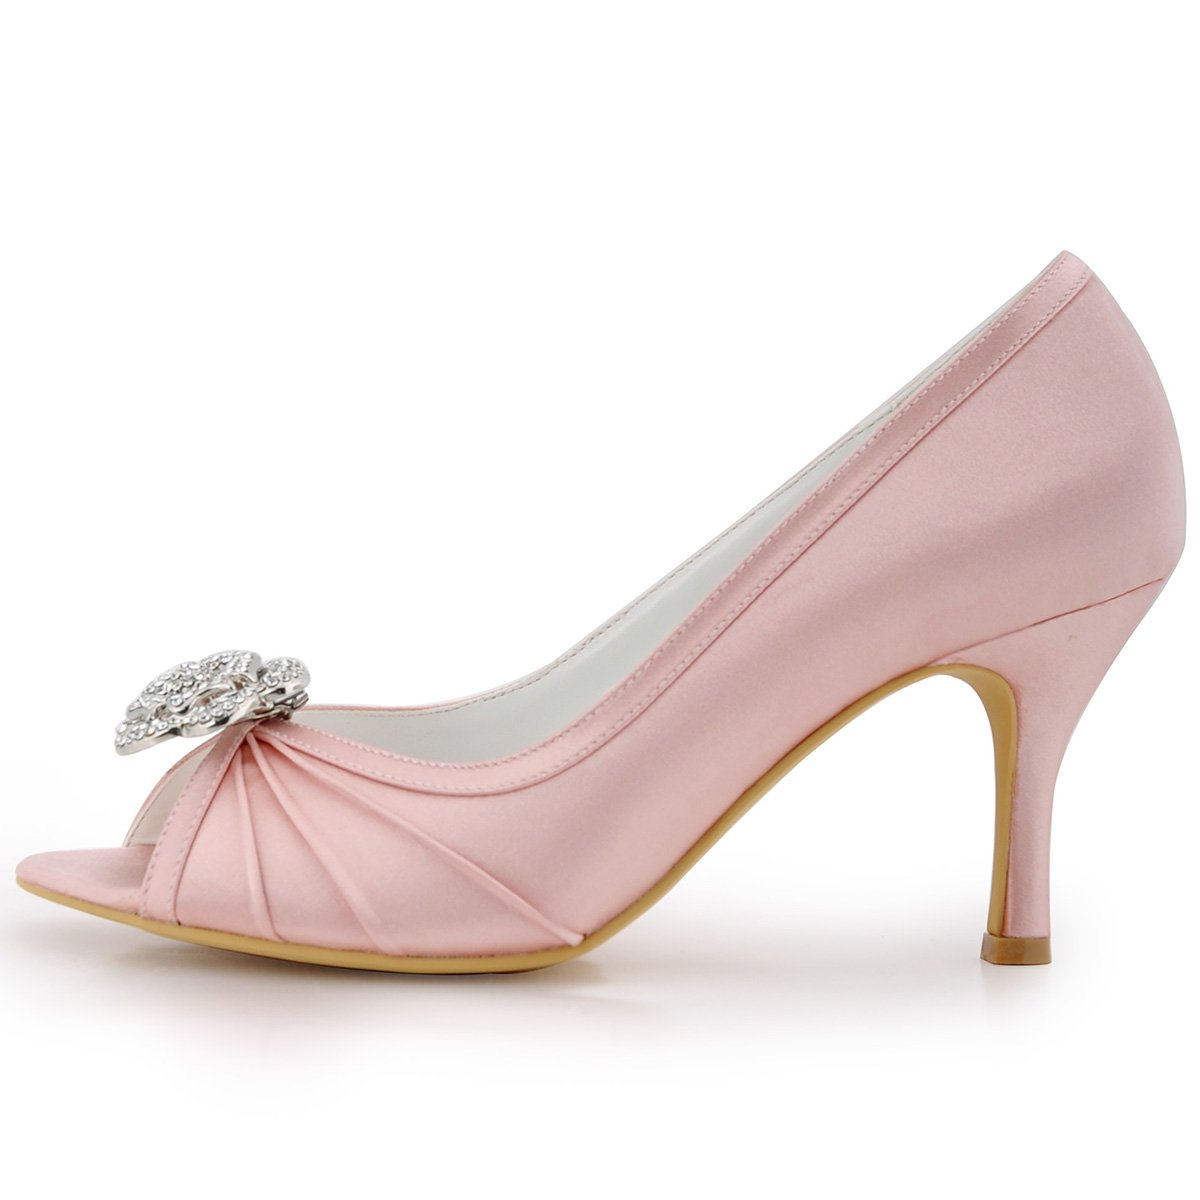 Elegantpark EP2094AF Women s Peep Toe AF01 Removable Shoe Clips Prom High  Heel Satin Pleated Rhinestones Evening Court Shoes Pink UK 9  Amazon.co.uk   Shoes ... 621e930fa73d